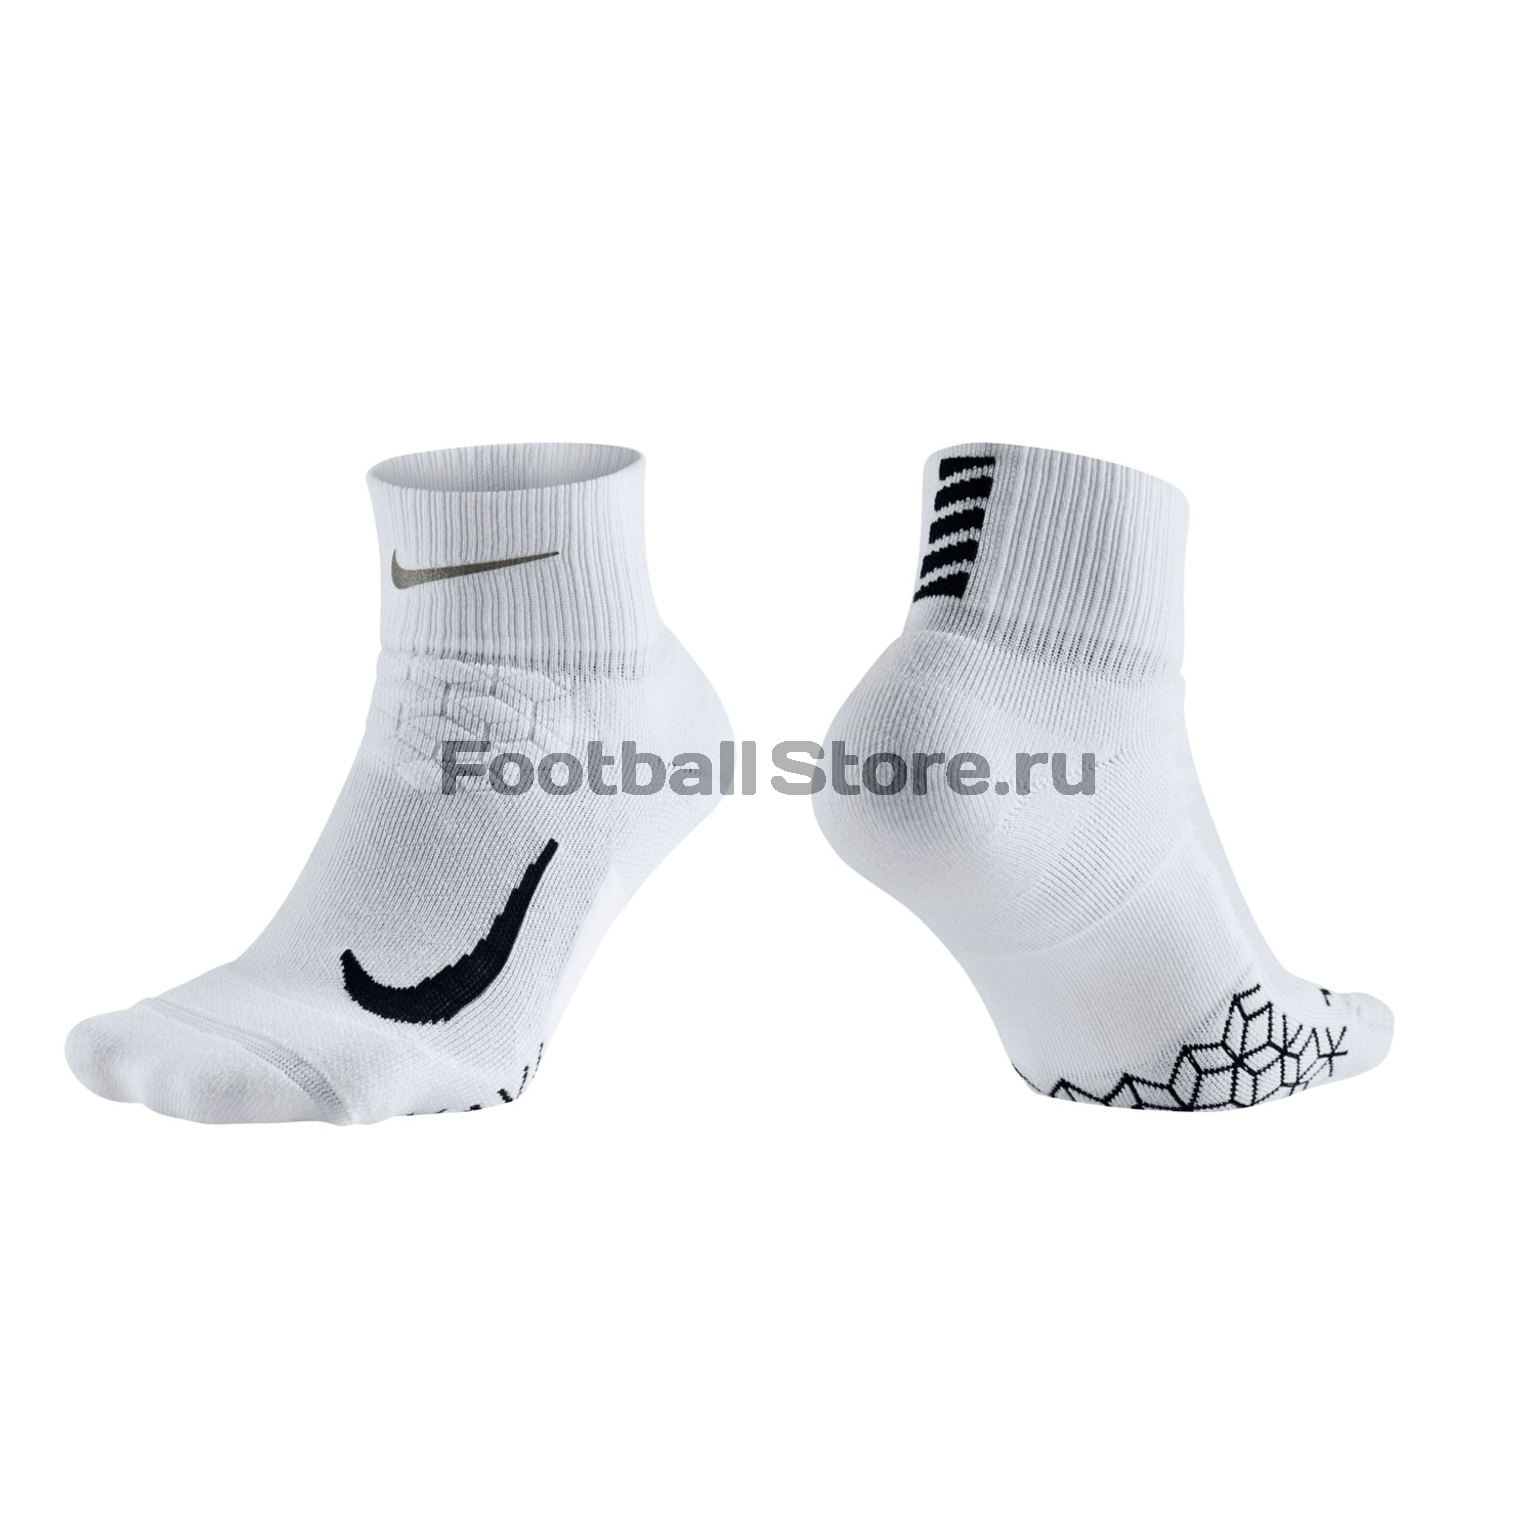 Носки Nike Elite Cushion Quarter Running Sock SX5463-100 чулок д щитков nike guard lock elite sleeve su12 se0173 011 m чёрный